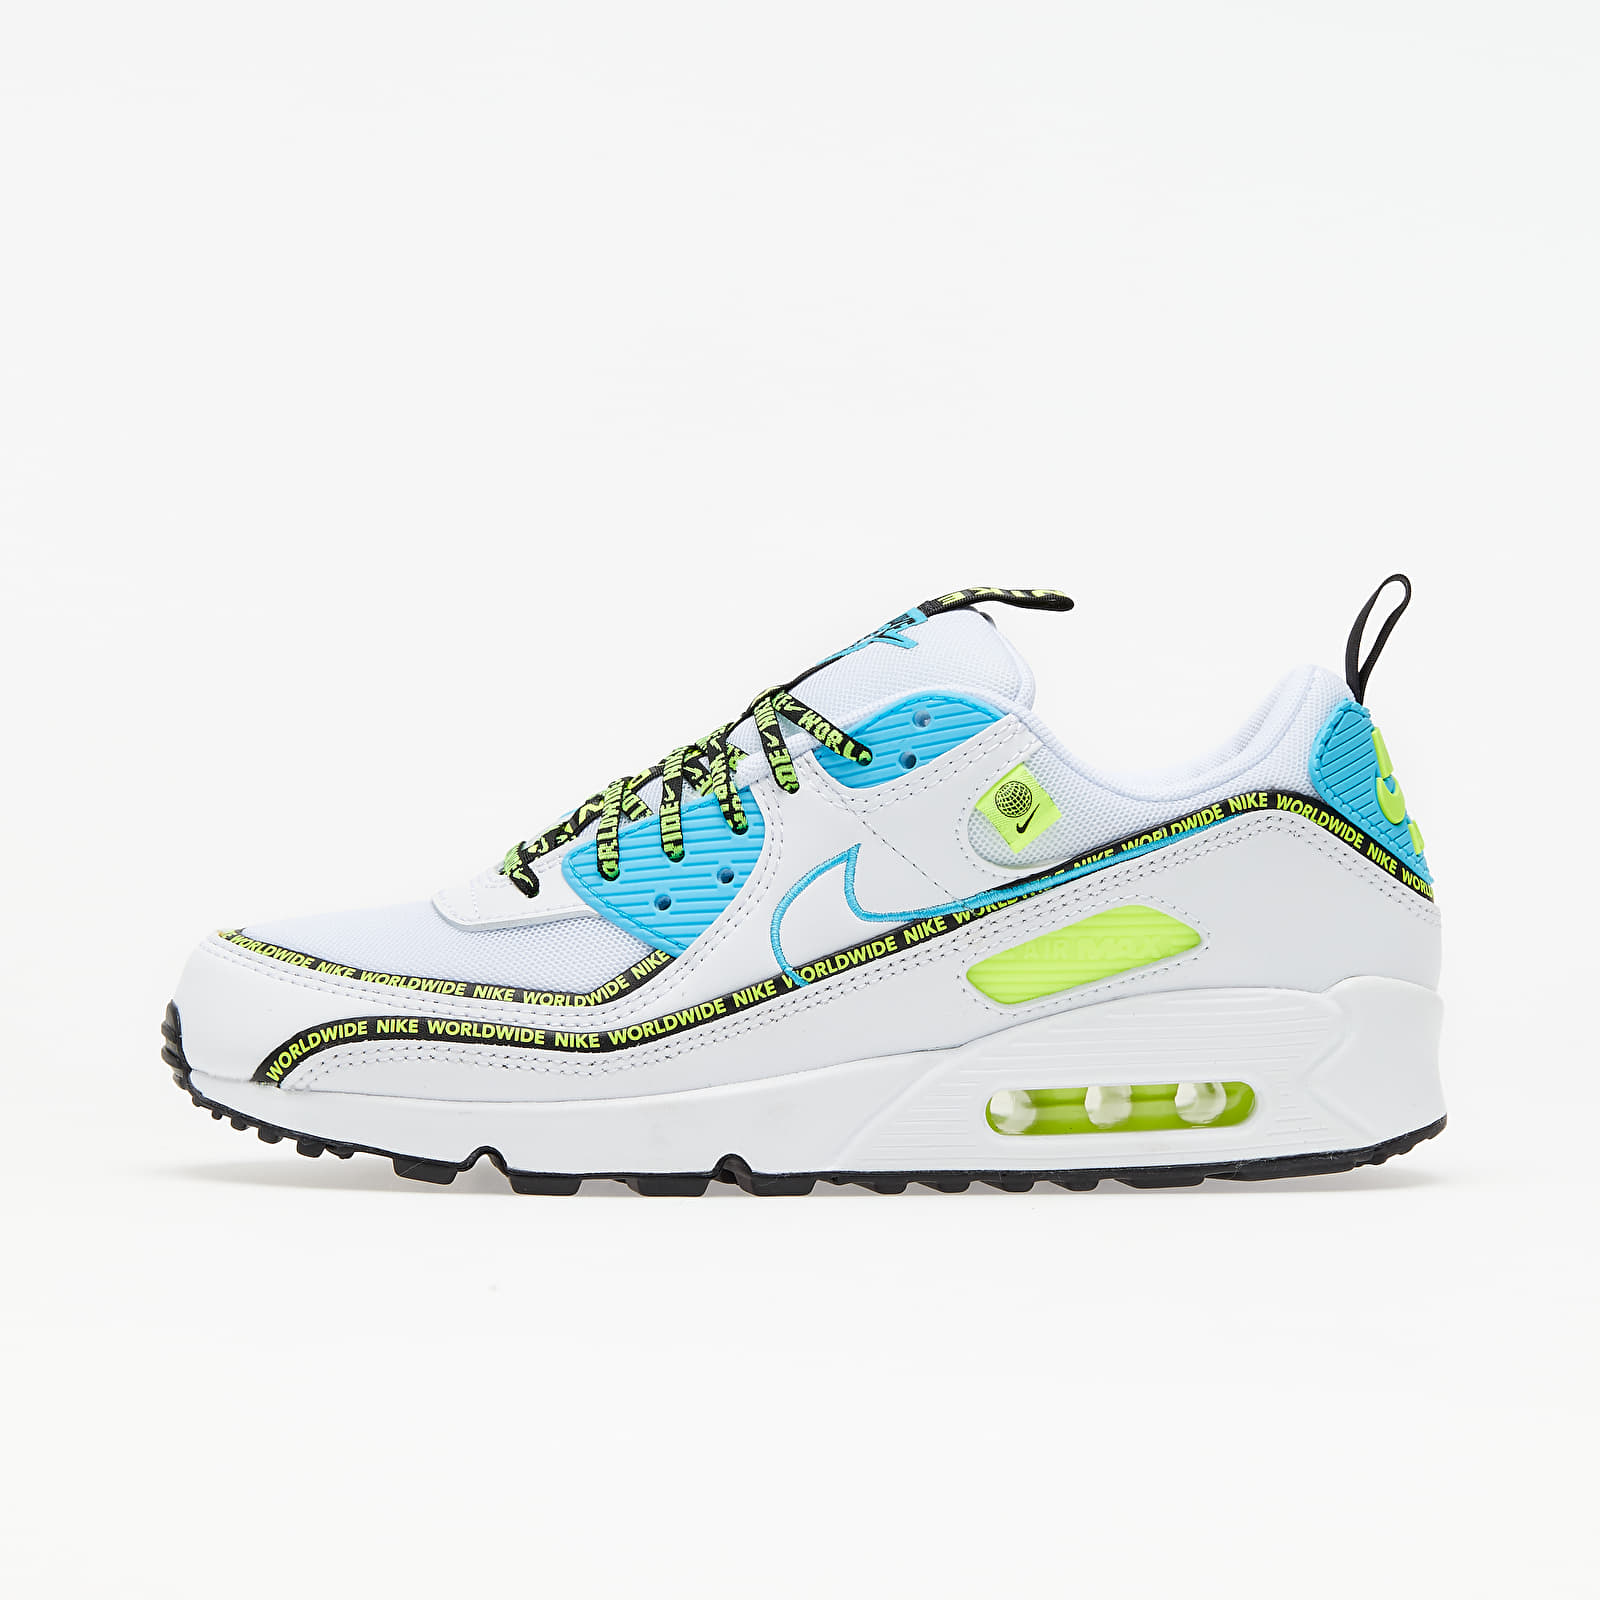 Nike Air Max 90 SE White/ Blue Fury-Black-Volt EUR 41